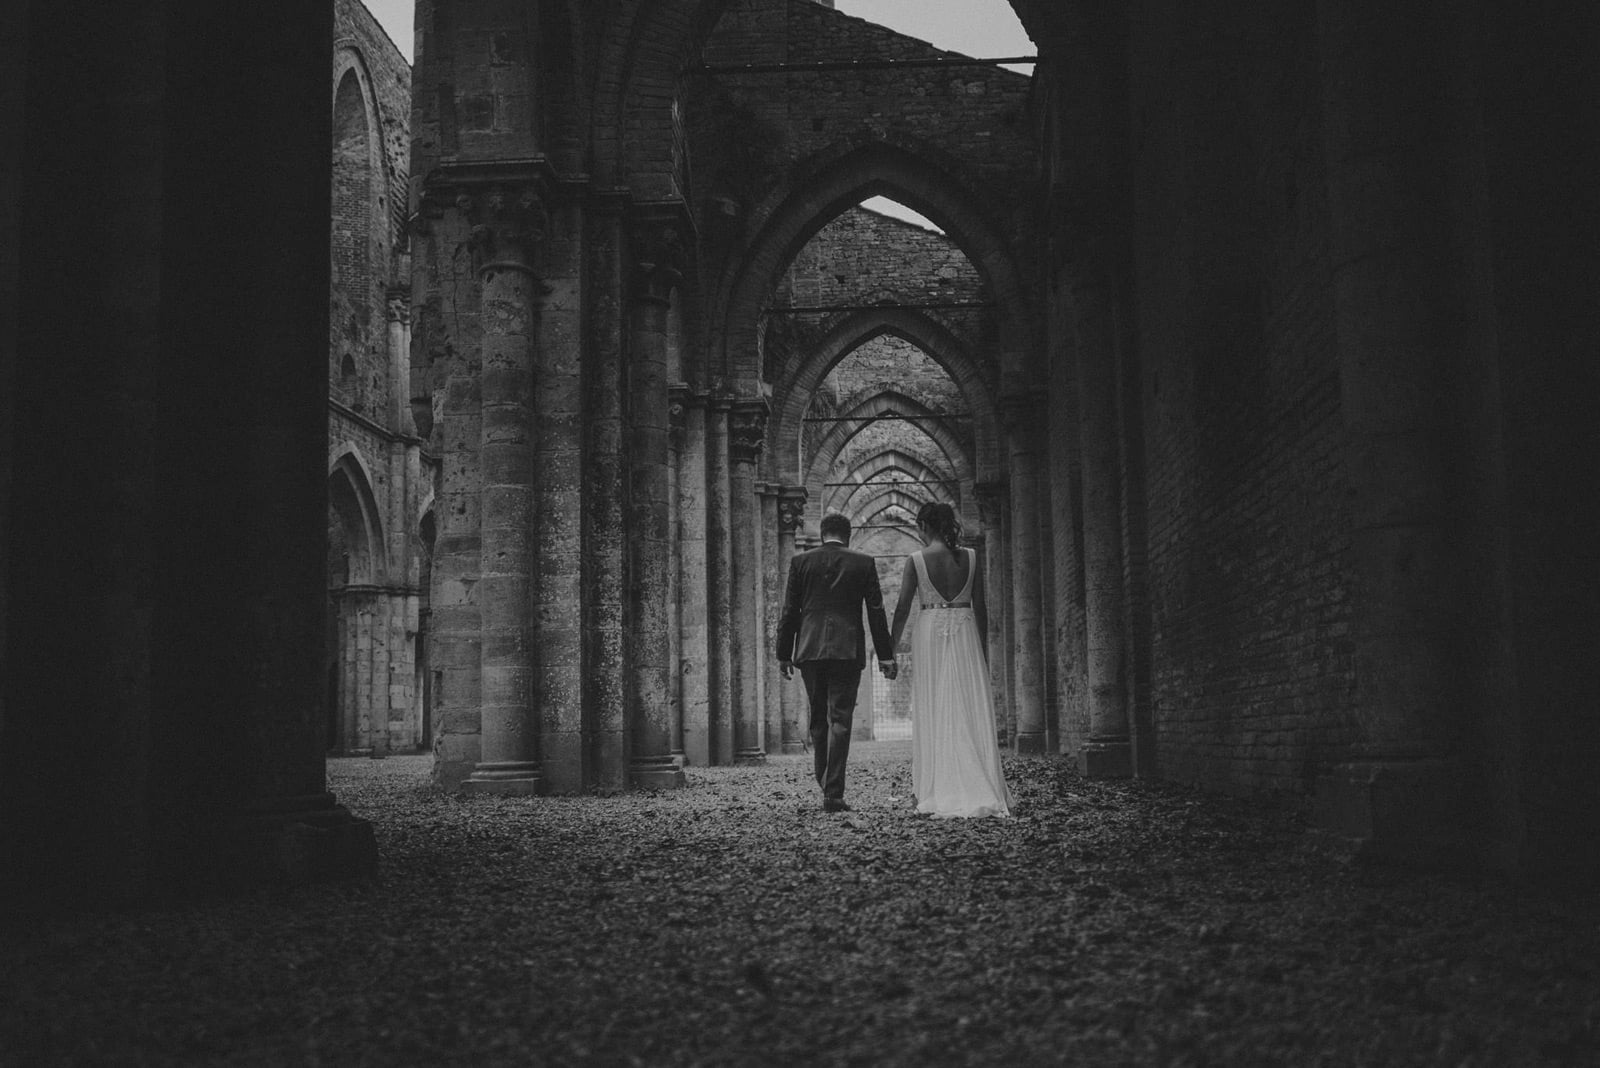 072-wedding-tuscany-san-galgano-siena-photographer